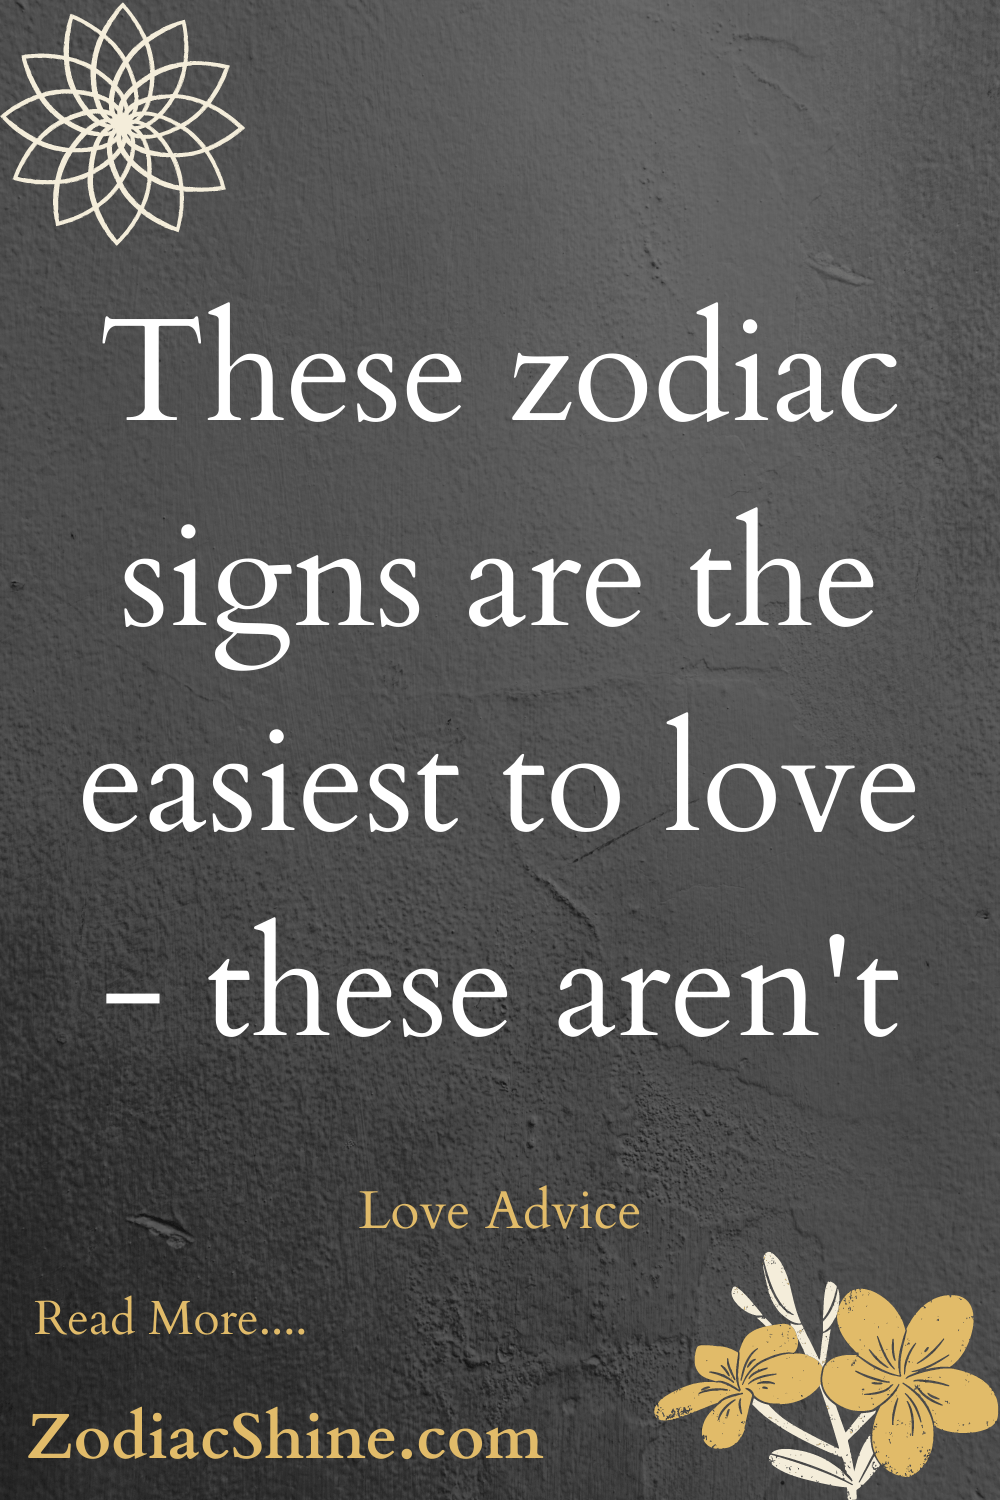 These zodiac signs are the easiest to love - these aren't